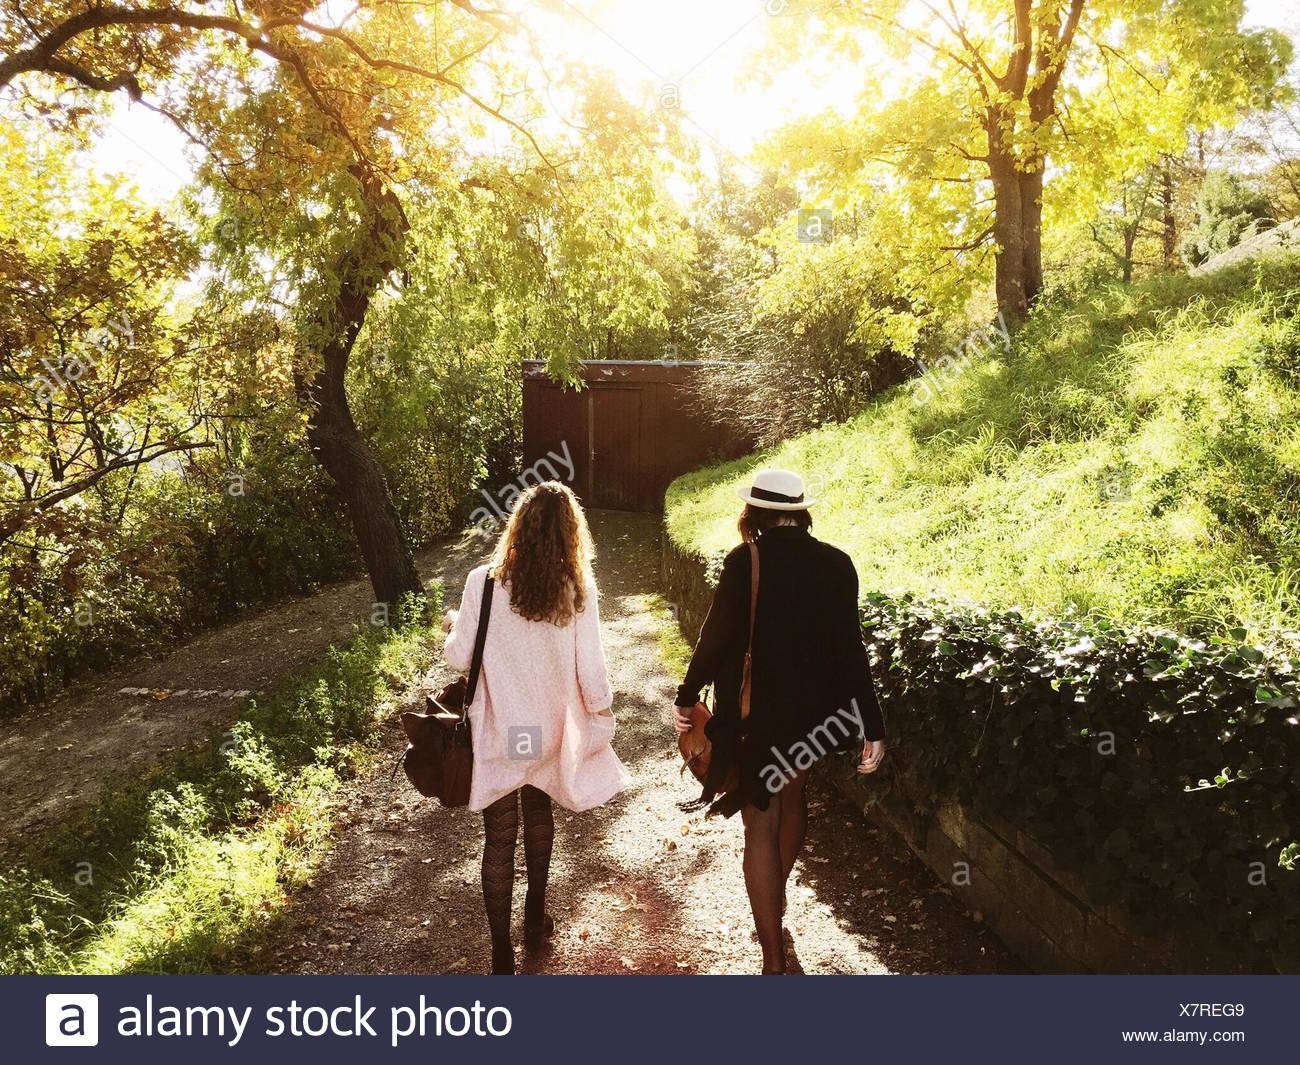 Rear View Of Young Female Friends Walking On Footpath In Park - Stock Image